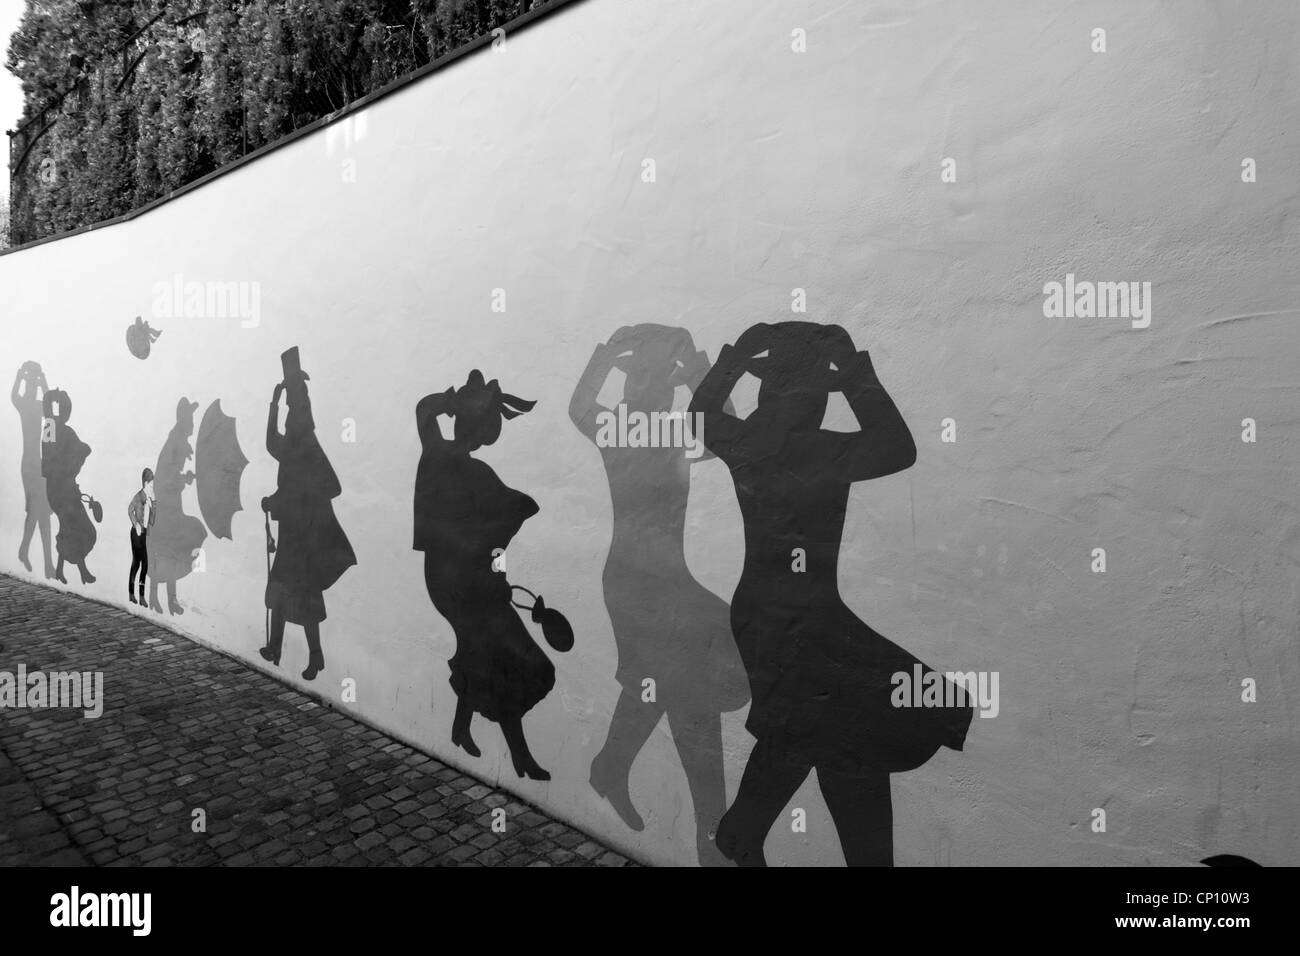 People walking, holding hats on a windy day. Mural in old twon Zurich. - Stock Image